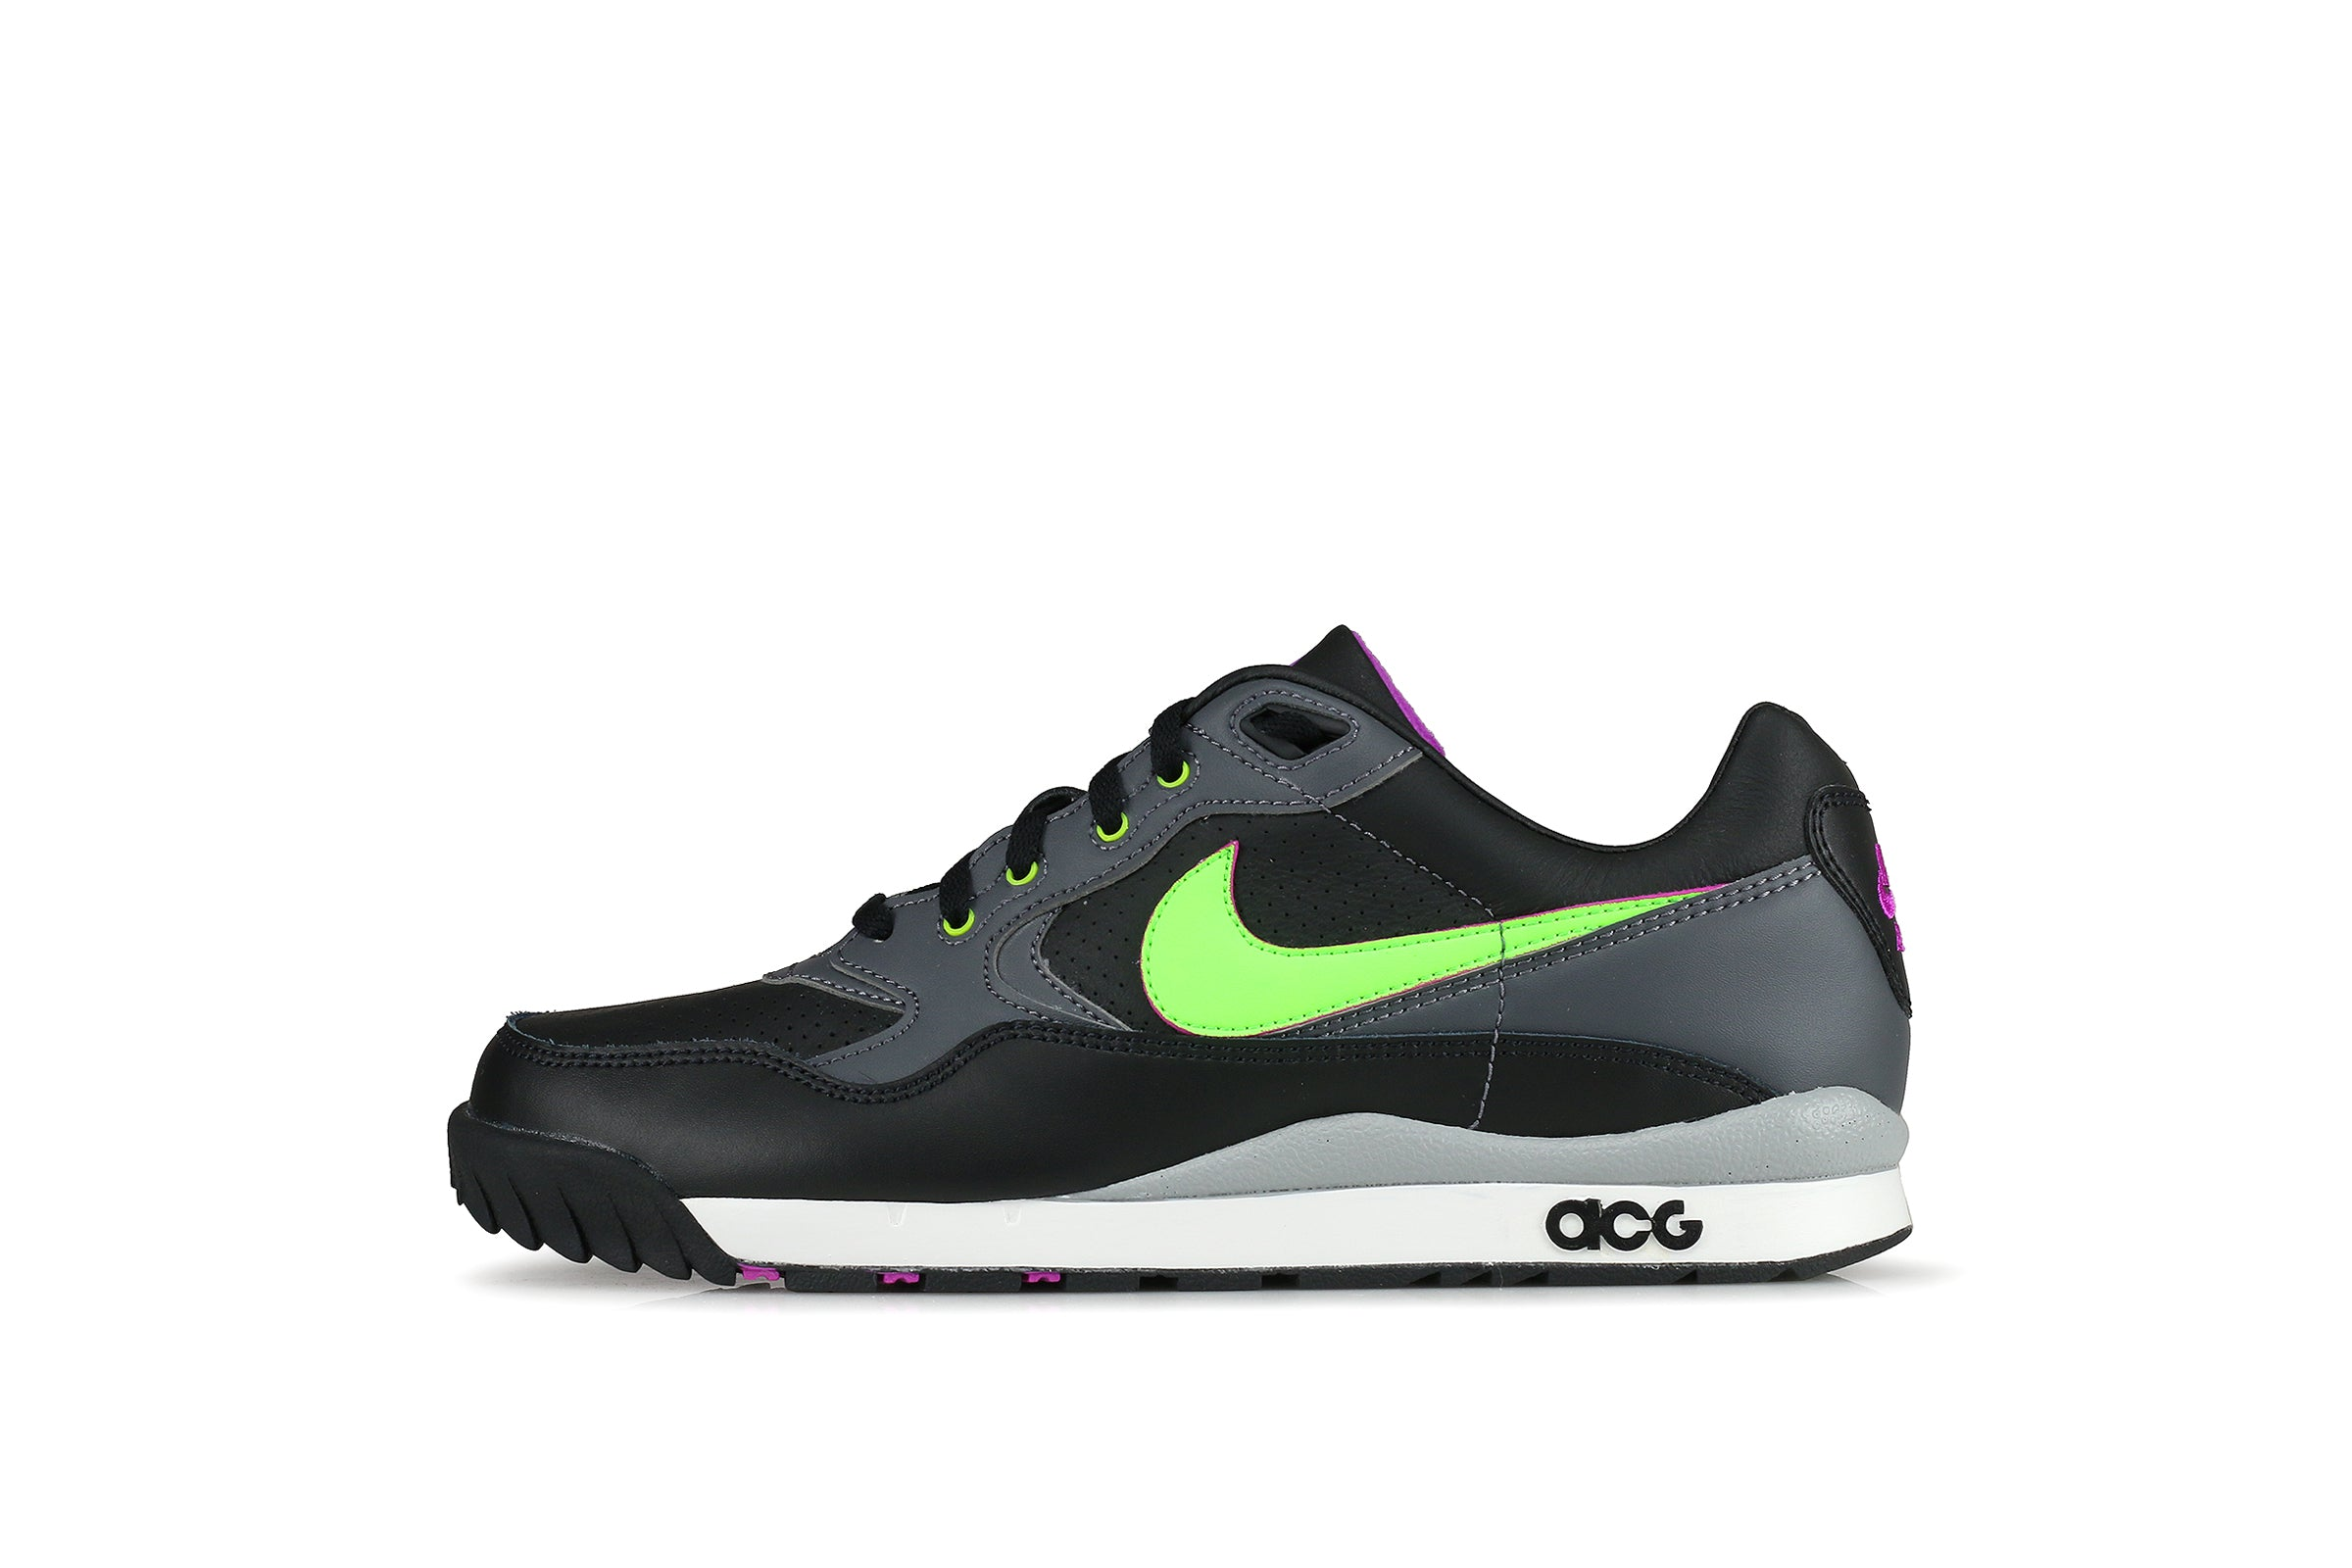 88b2a5ac41 Nike Air Wildwood ACG